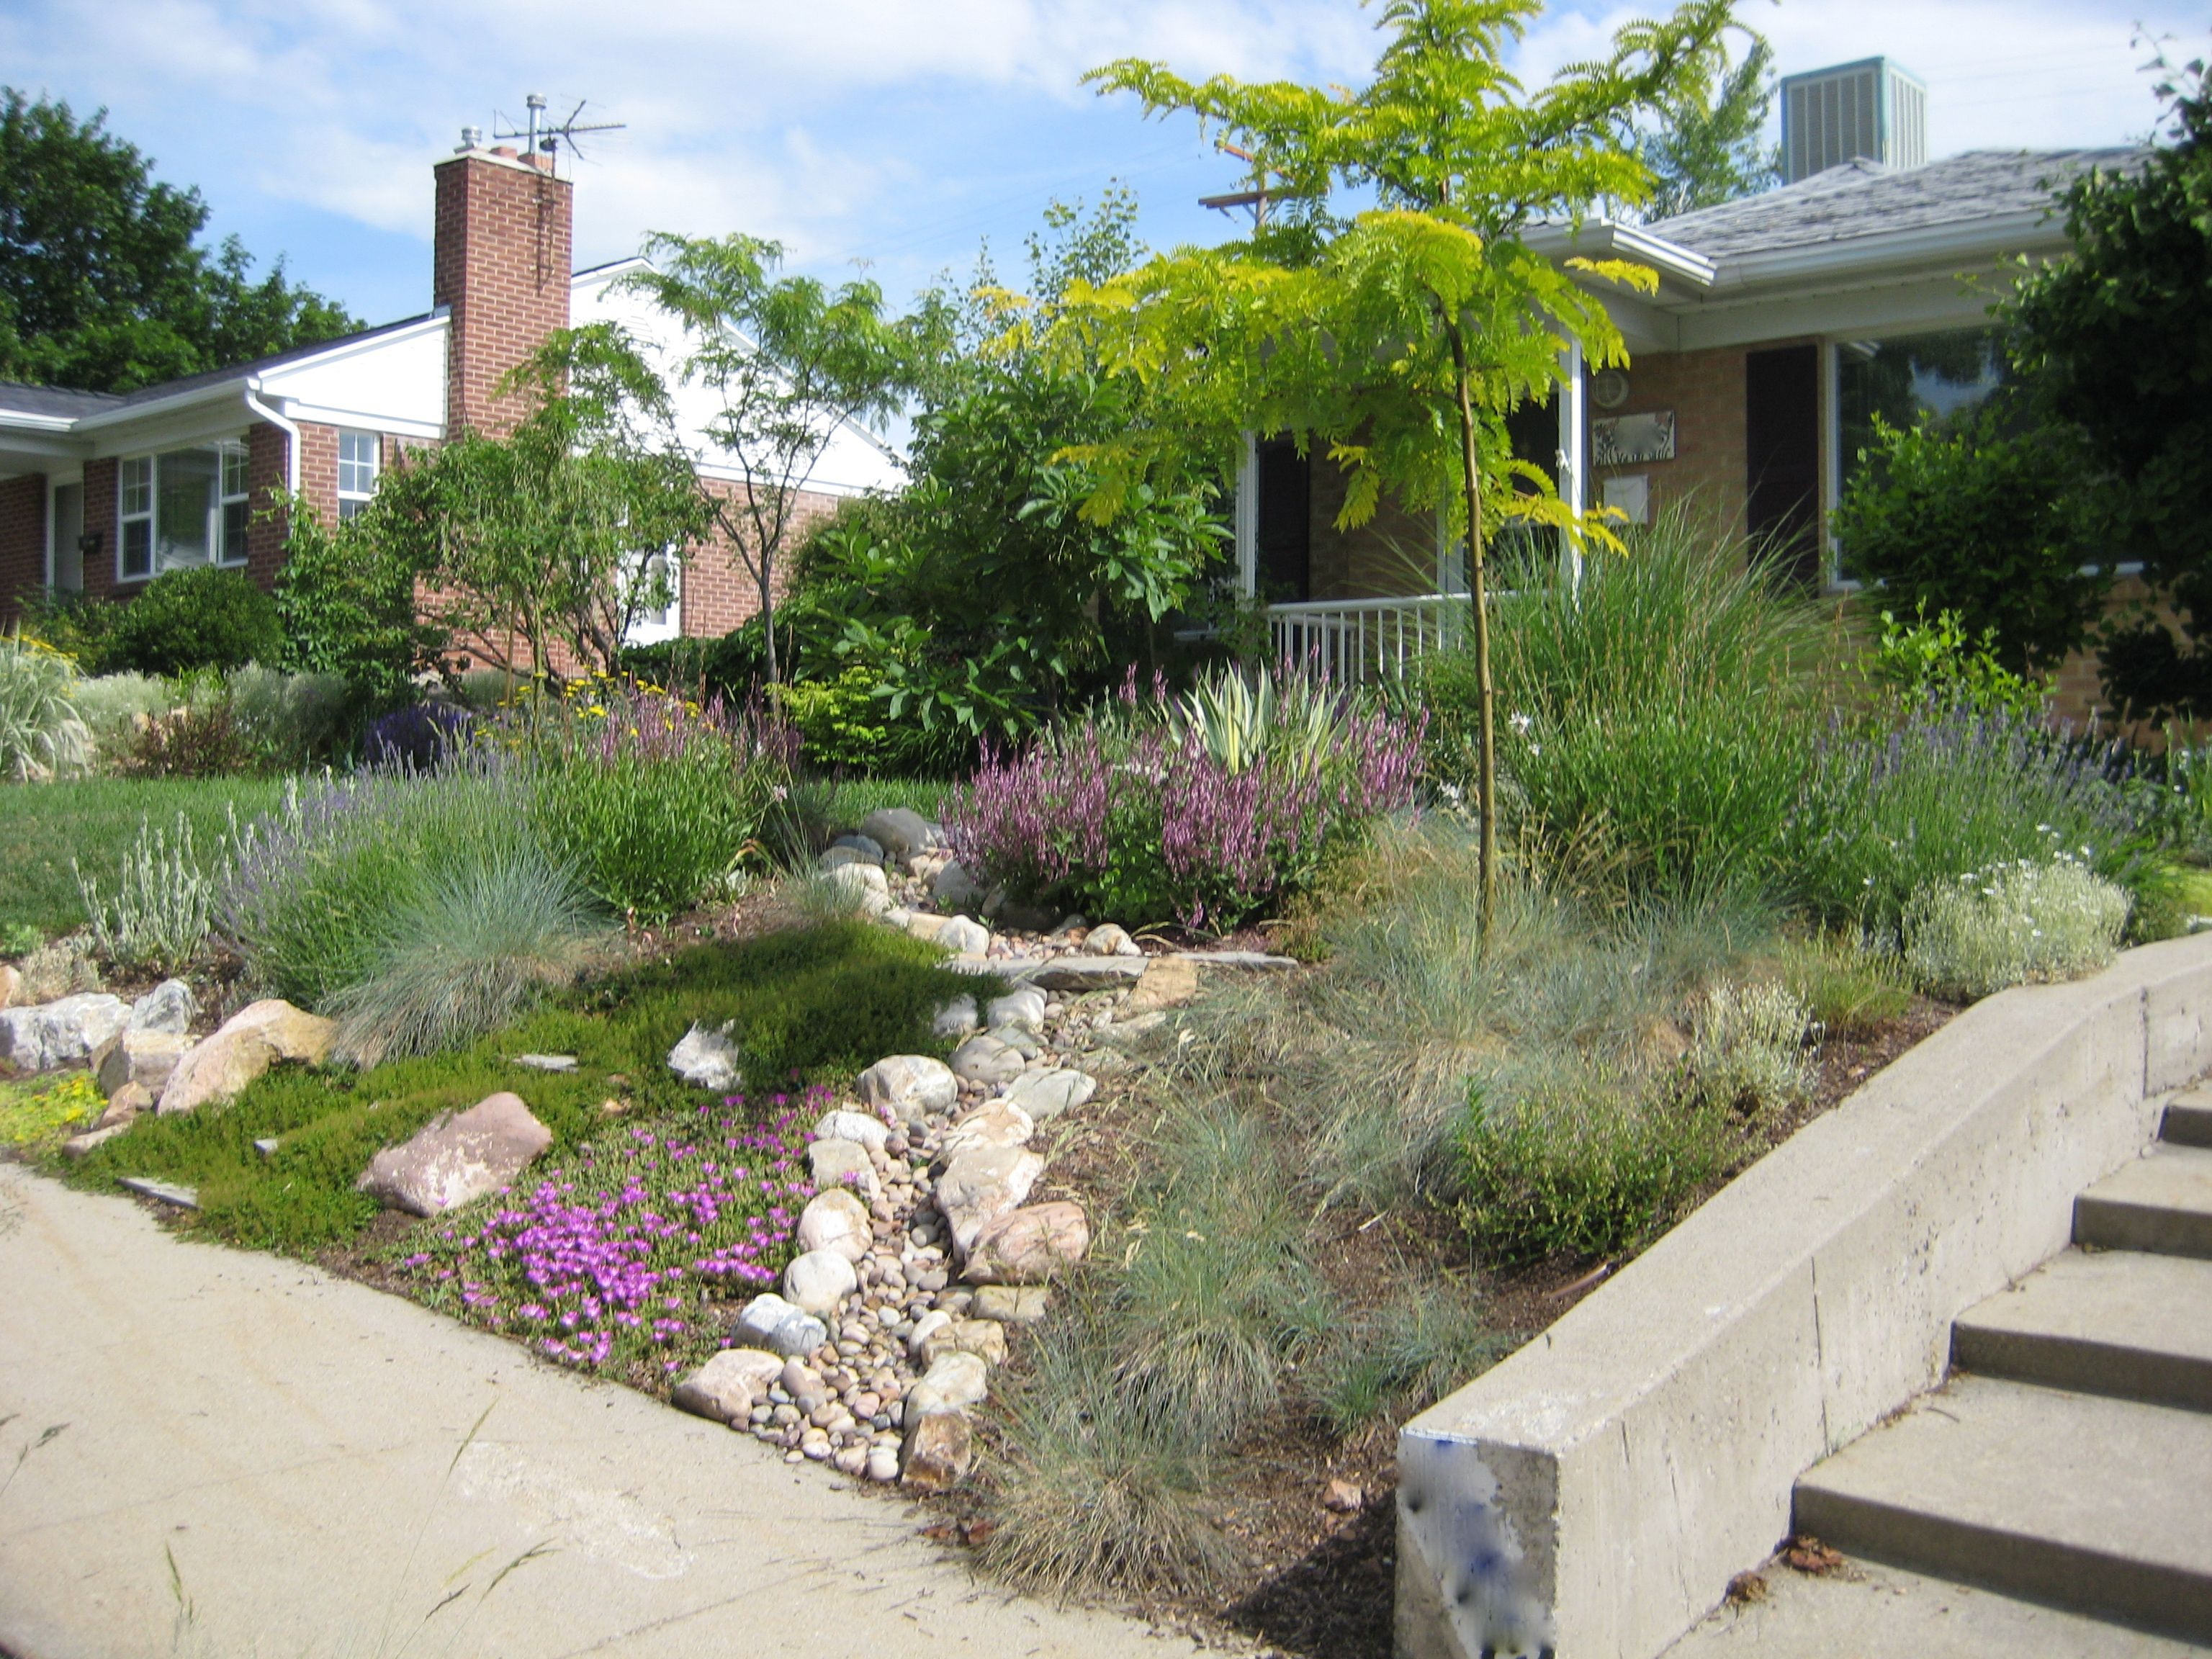 Considering drought tolerant landscaping for cheap and beautiful garden inspiring front yard landscape with drought tolerant landscaping and low retaining